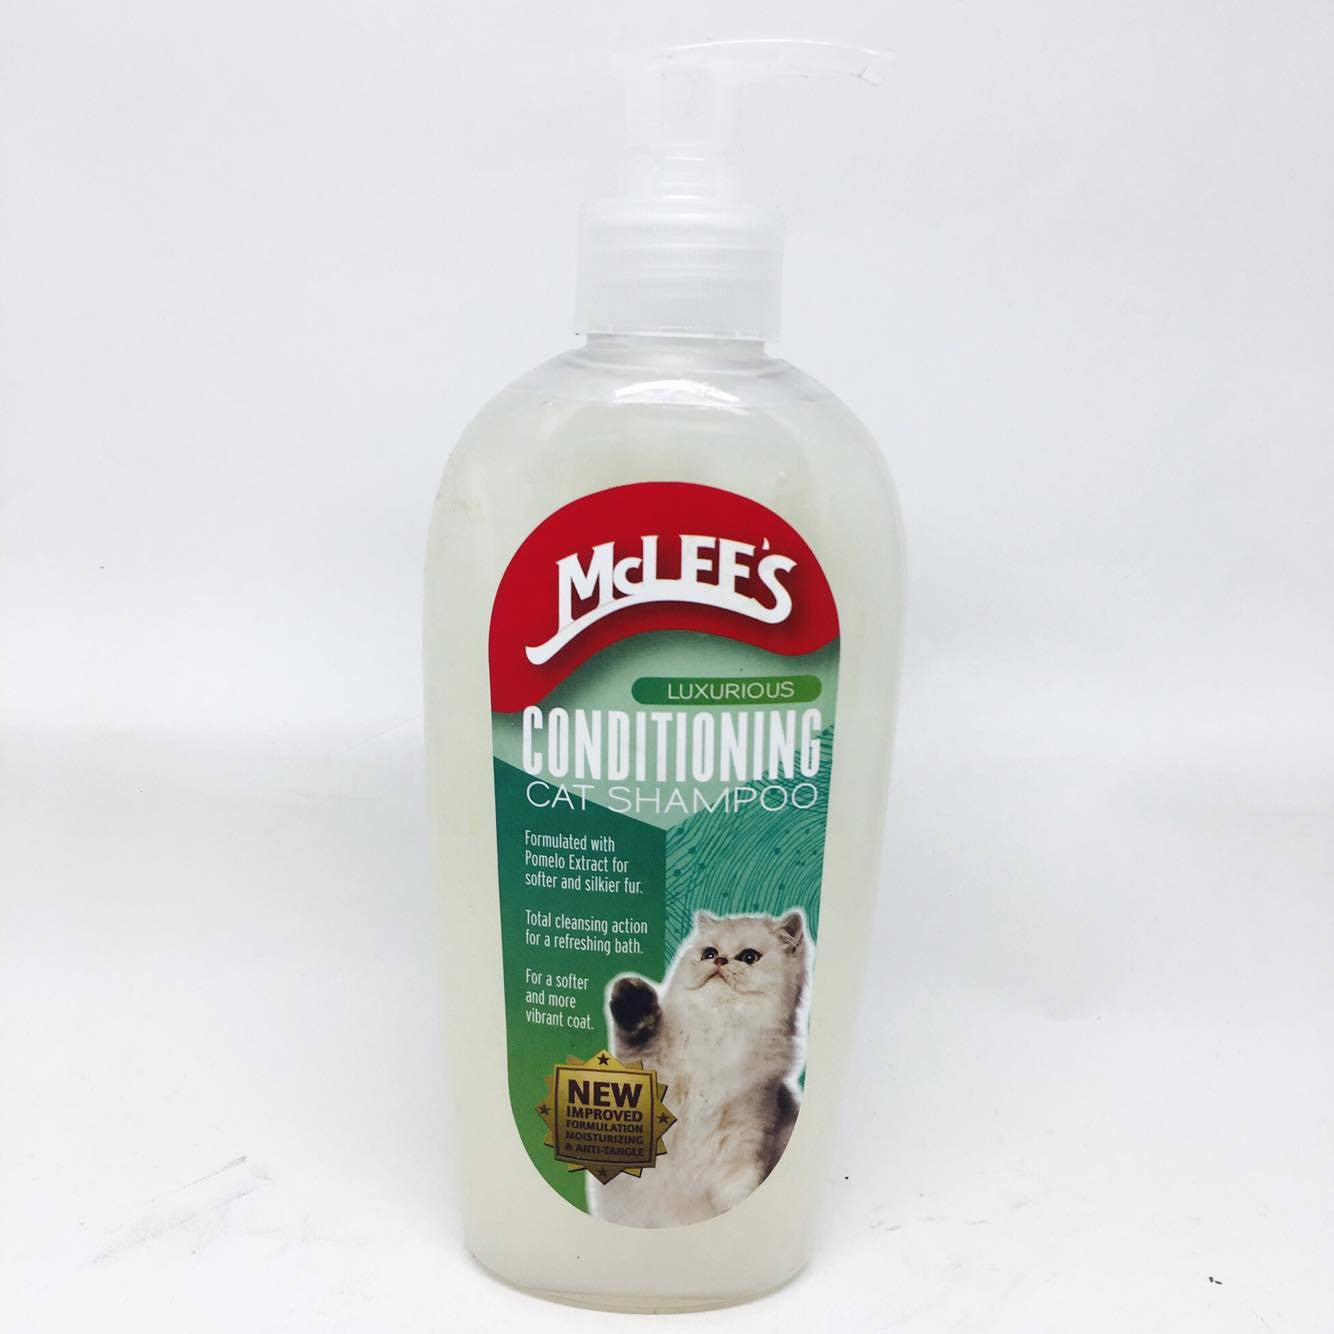 McLee's Luxurious Conditioning Cat Shampoo